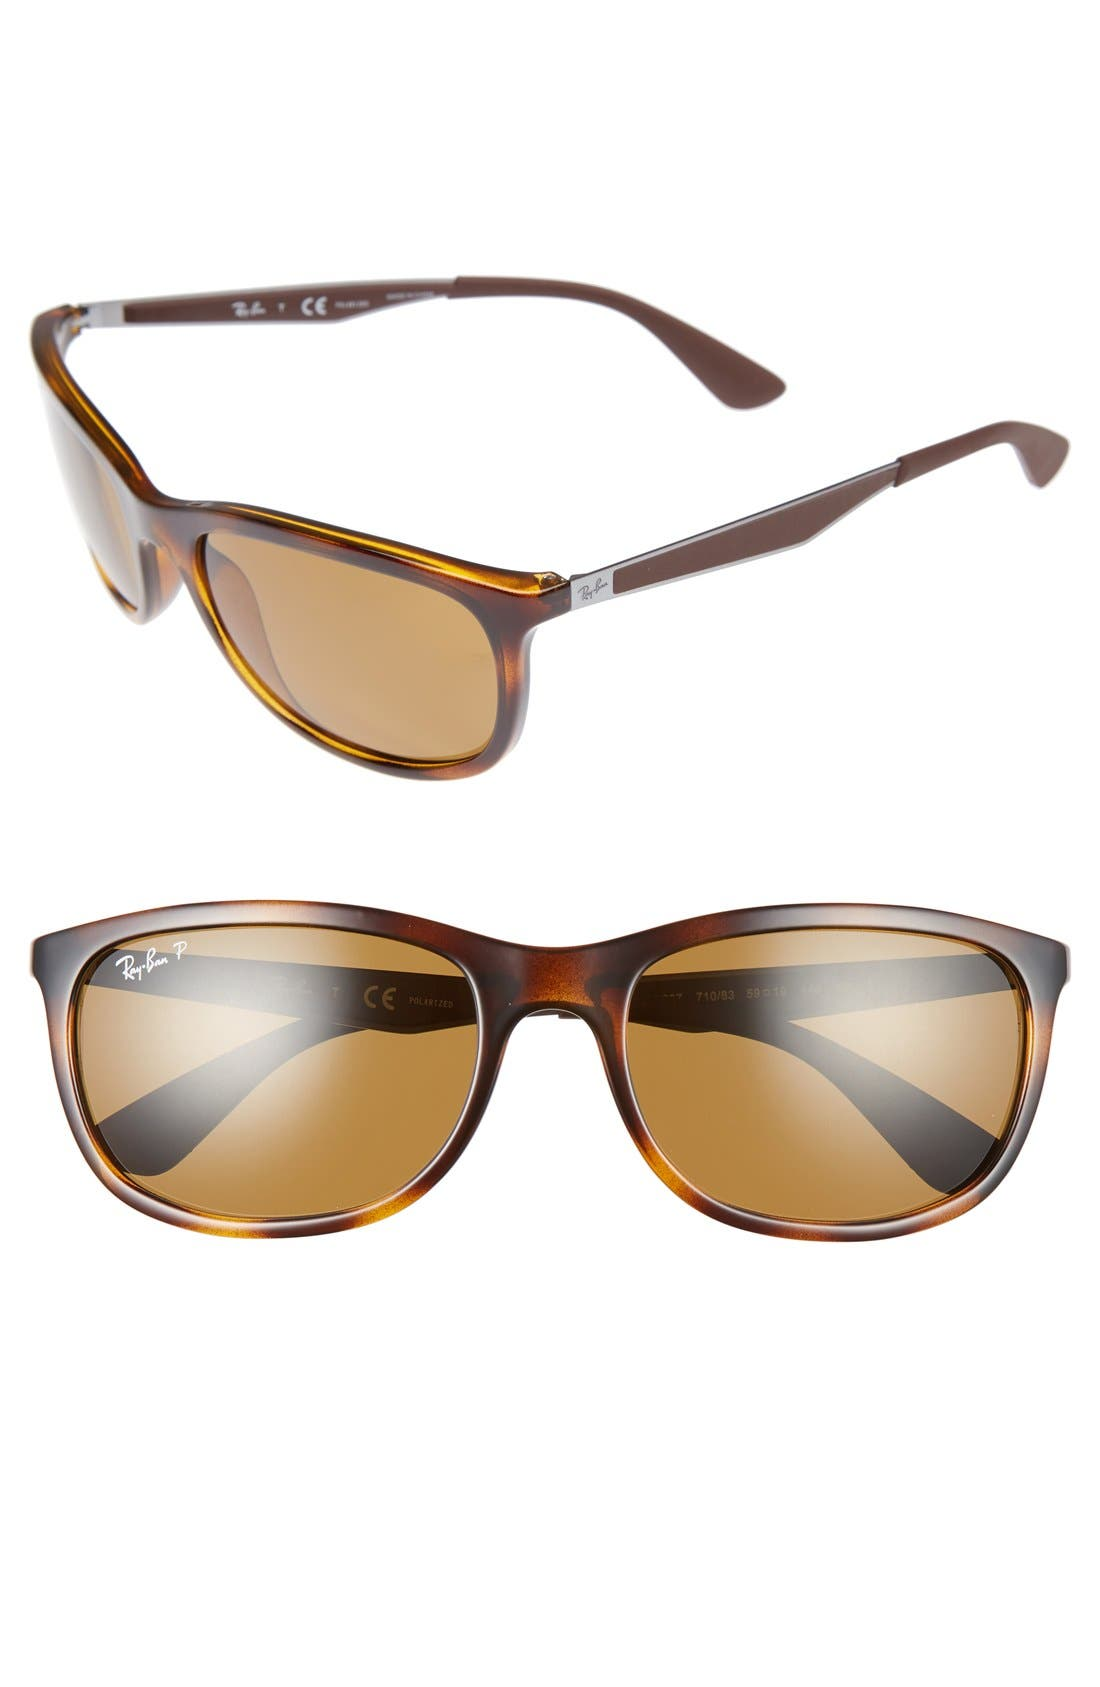 Ray-Ban 59mm Polarized Sunglasses